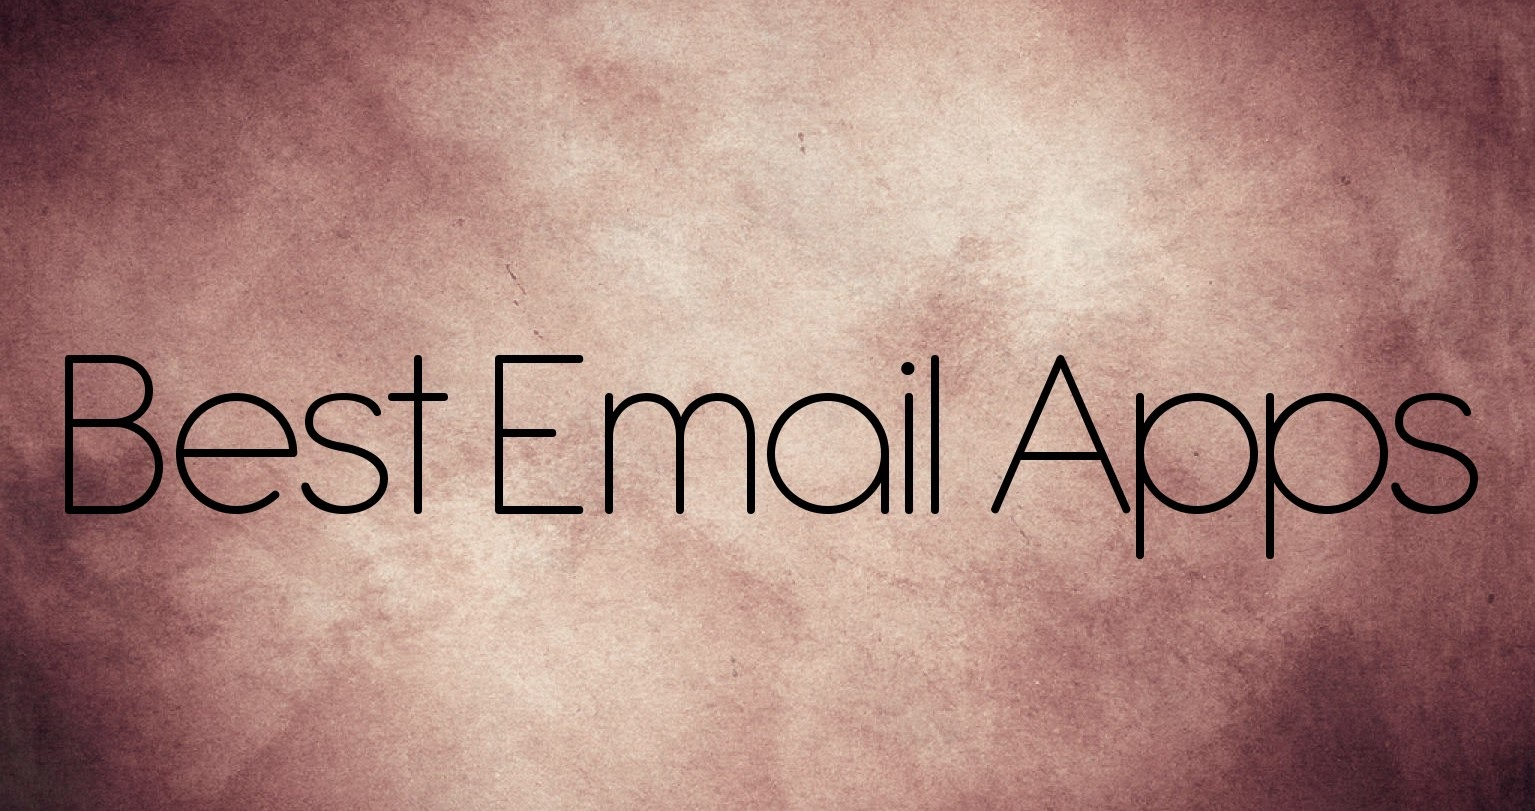 Best-email-apps-for-iPhone-iPad-AppsDose 8 Best Email Apps for iPhone & iPad 2018 Technology